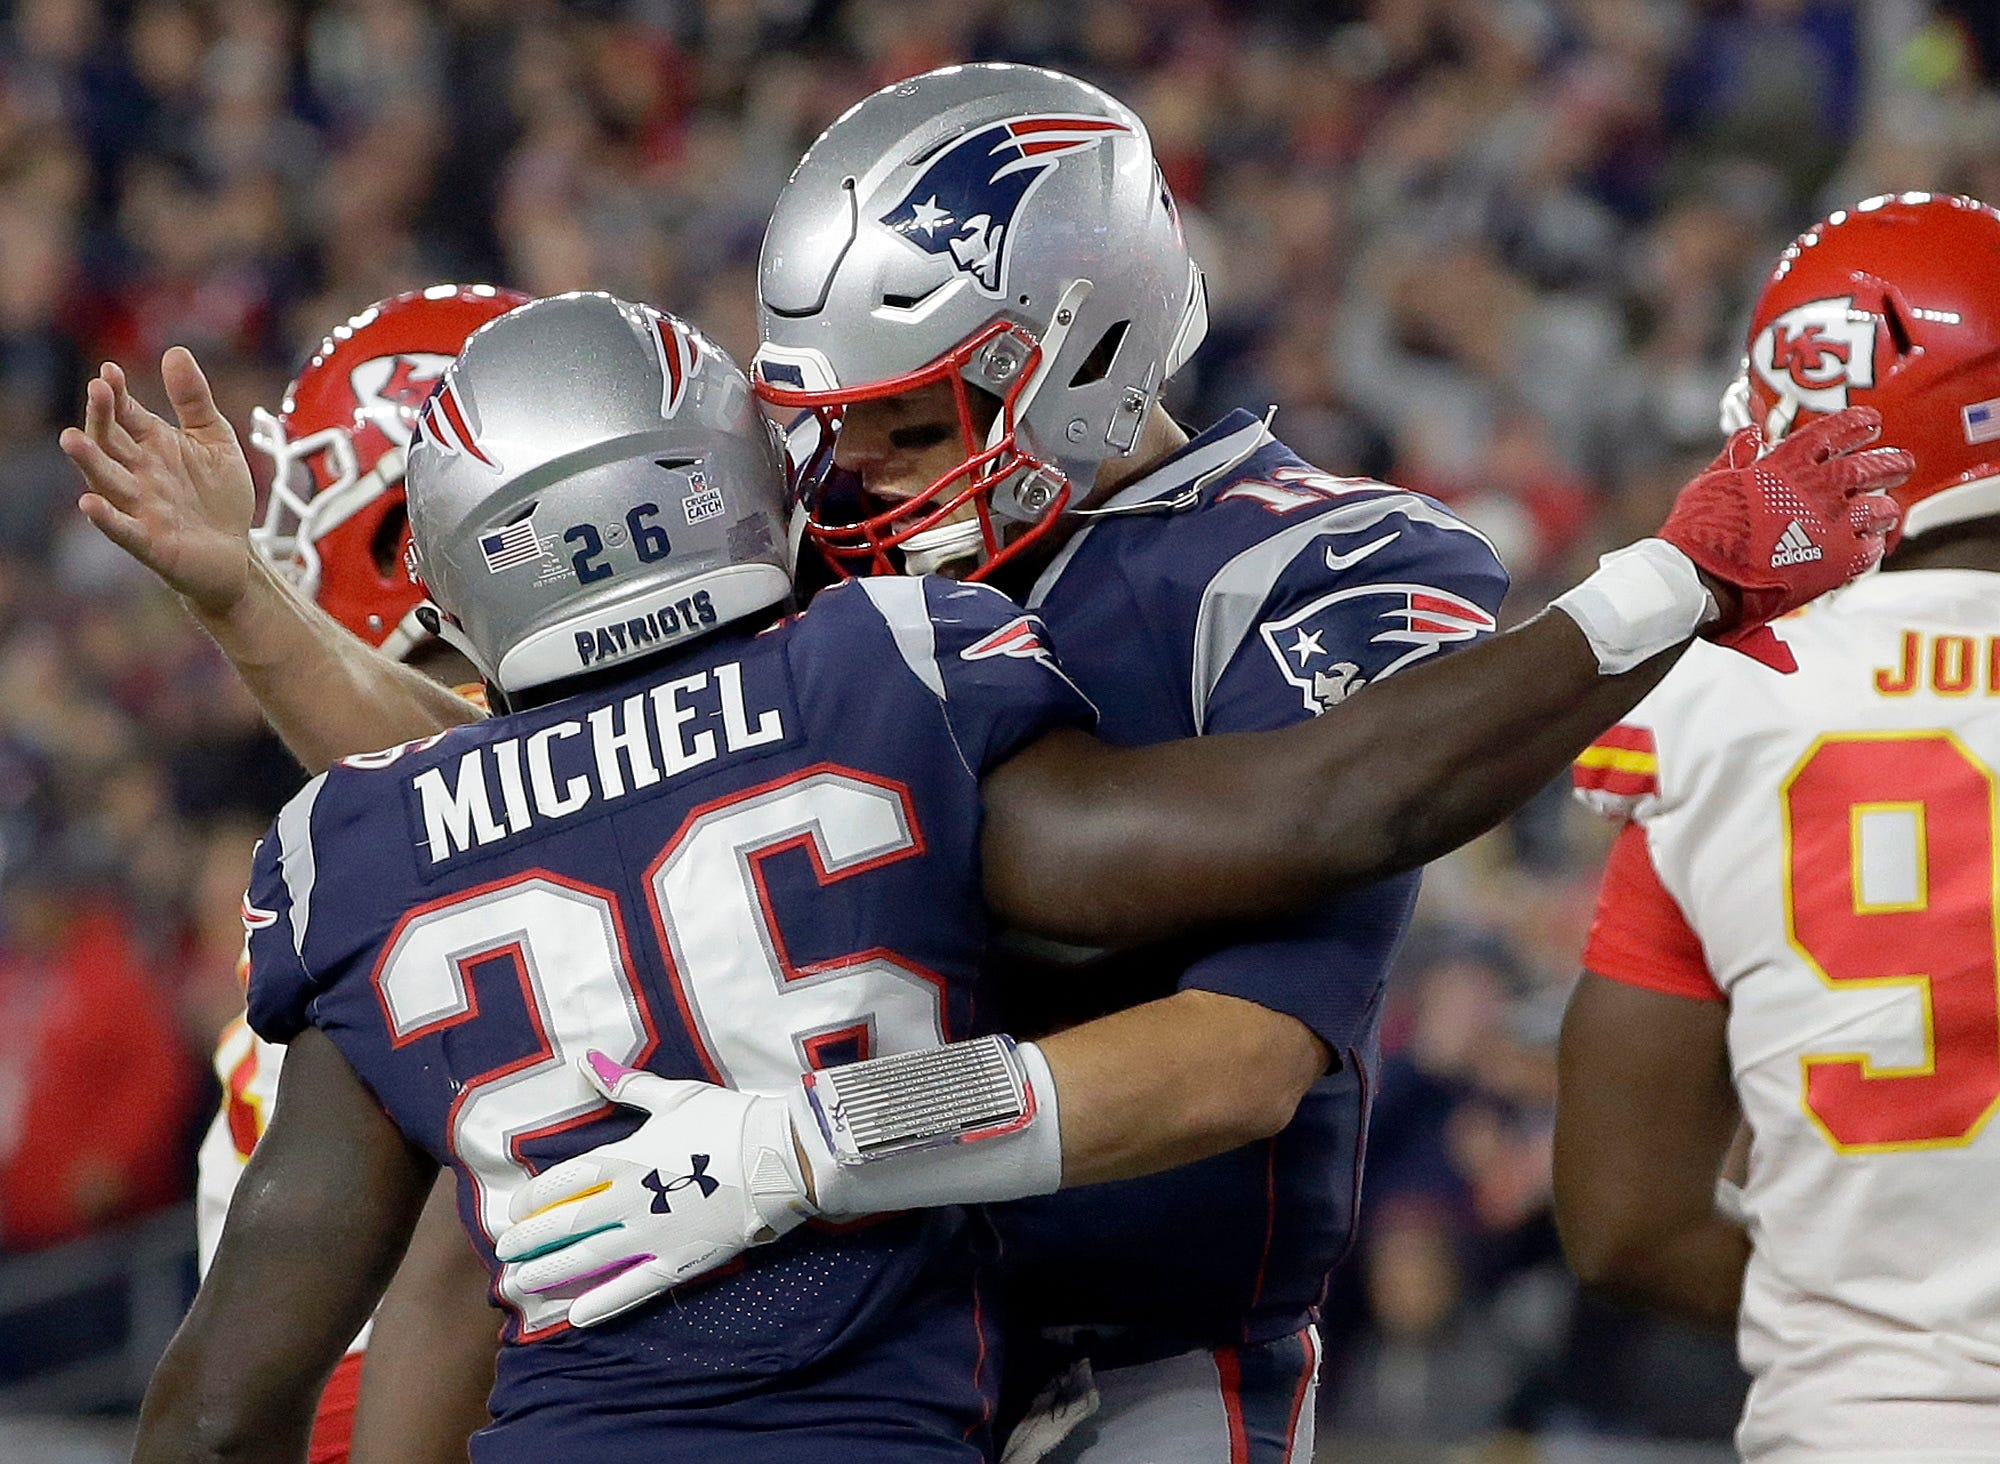 lowest price 16d3d adfac NFL overreactions Week 6  Pats win game of the year, Cowboys provide  blowout of